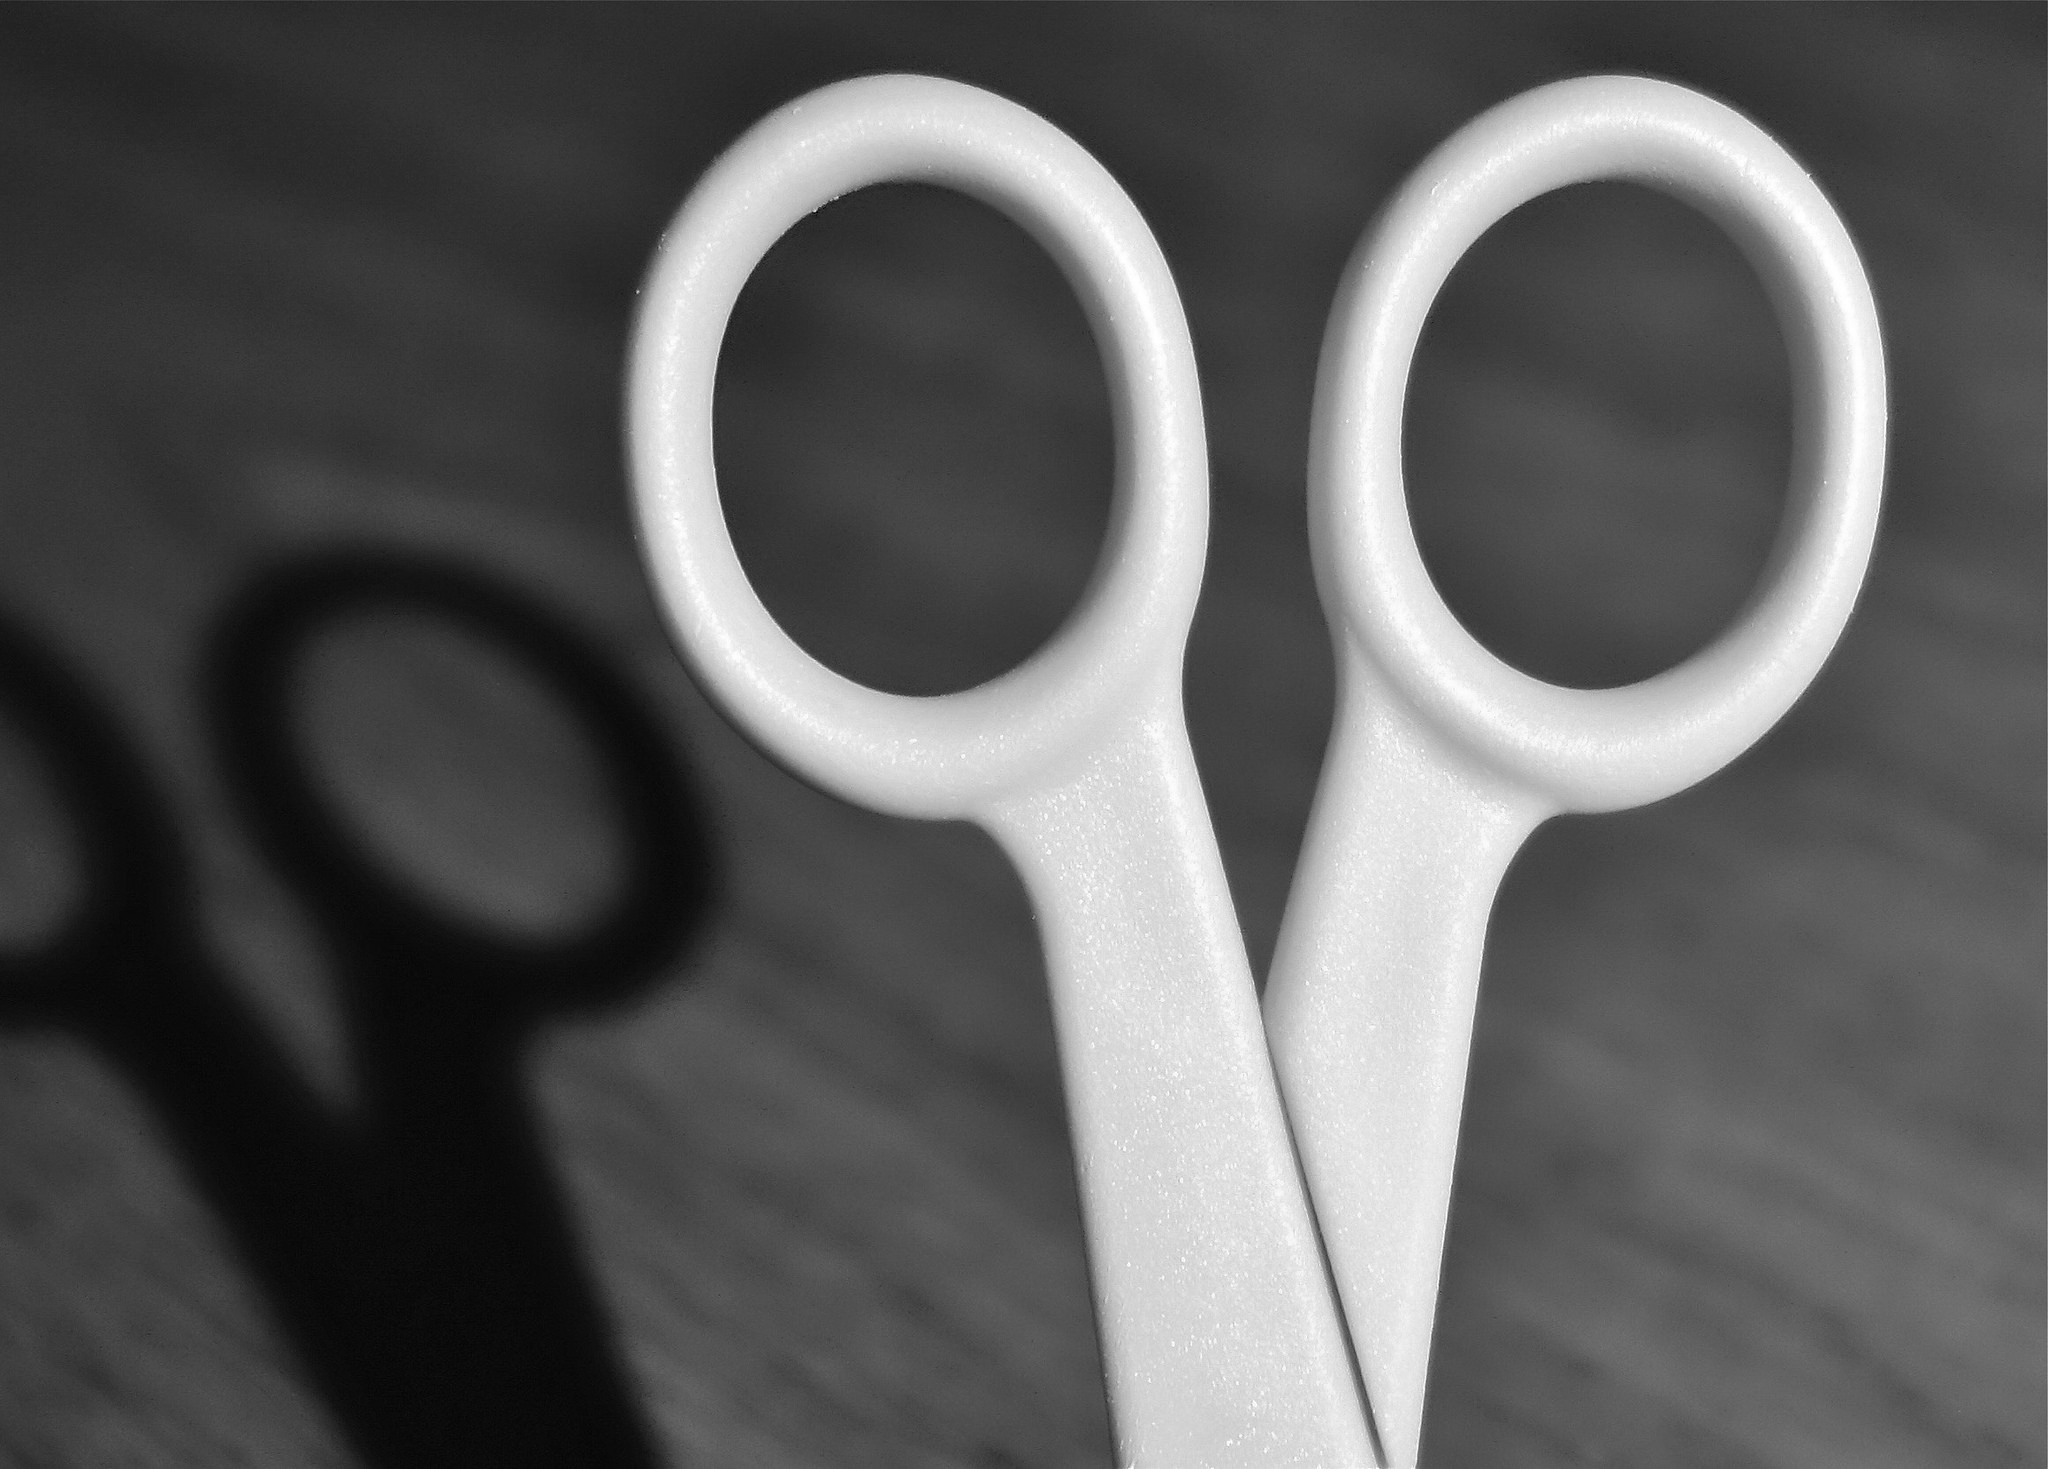 files/images/2017-05-22-scissors.jpg